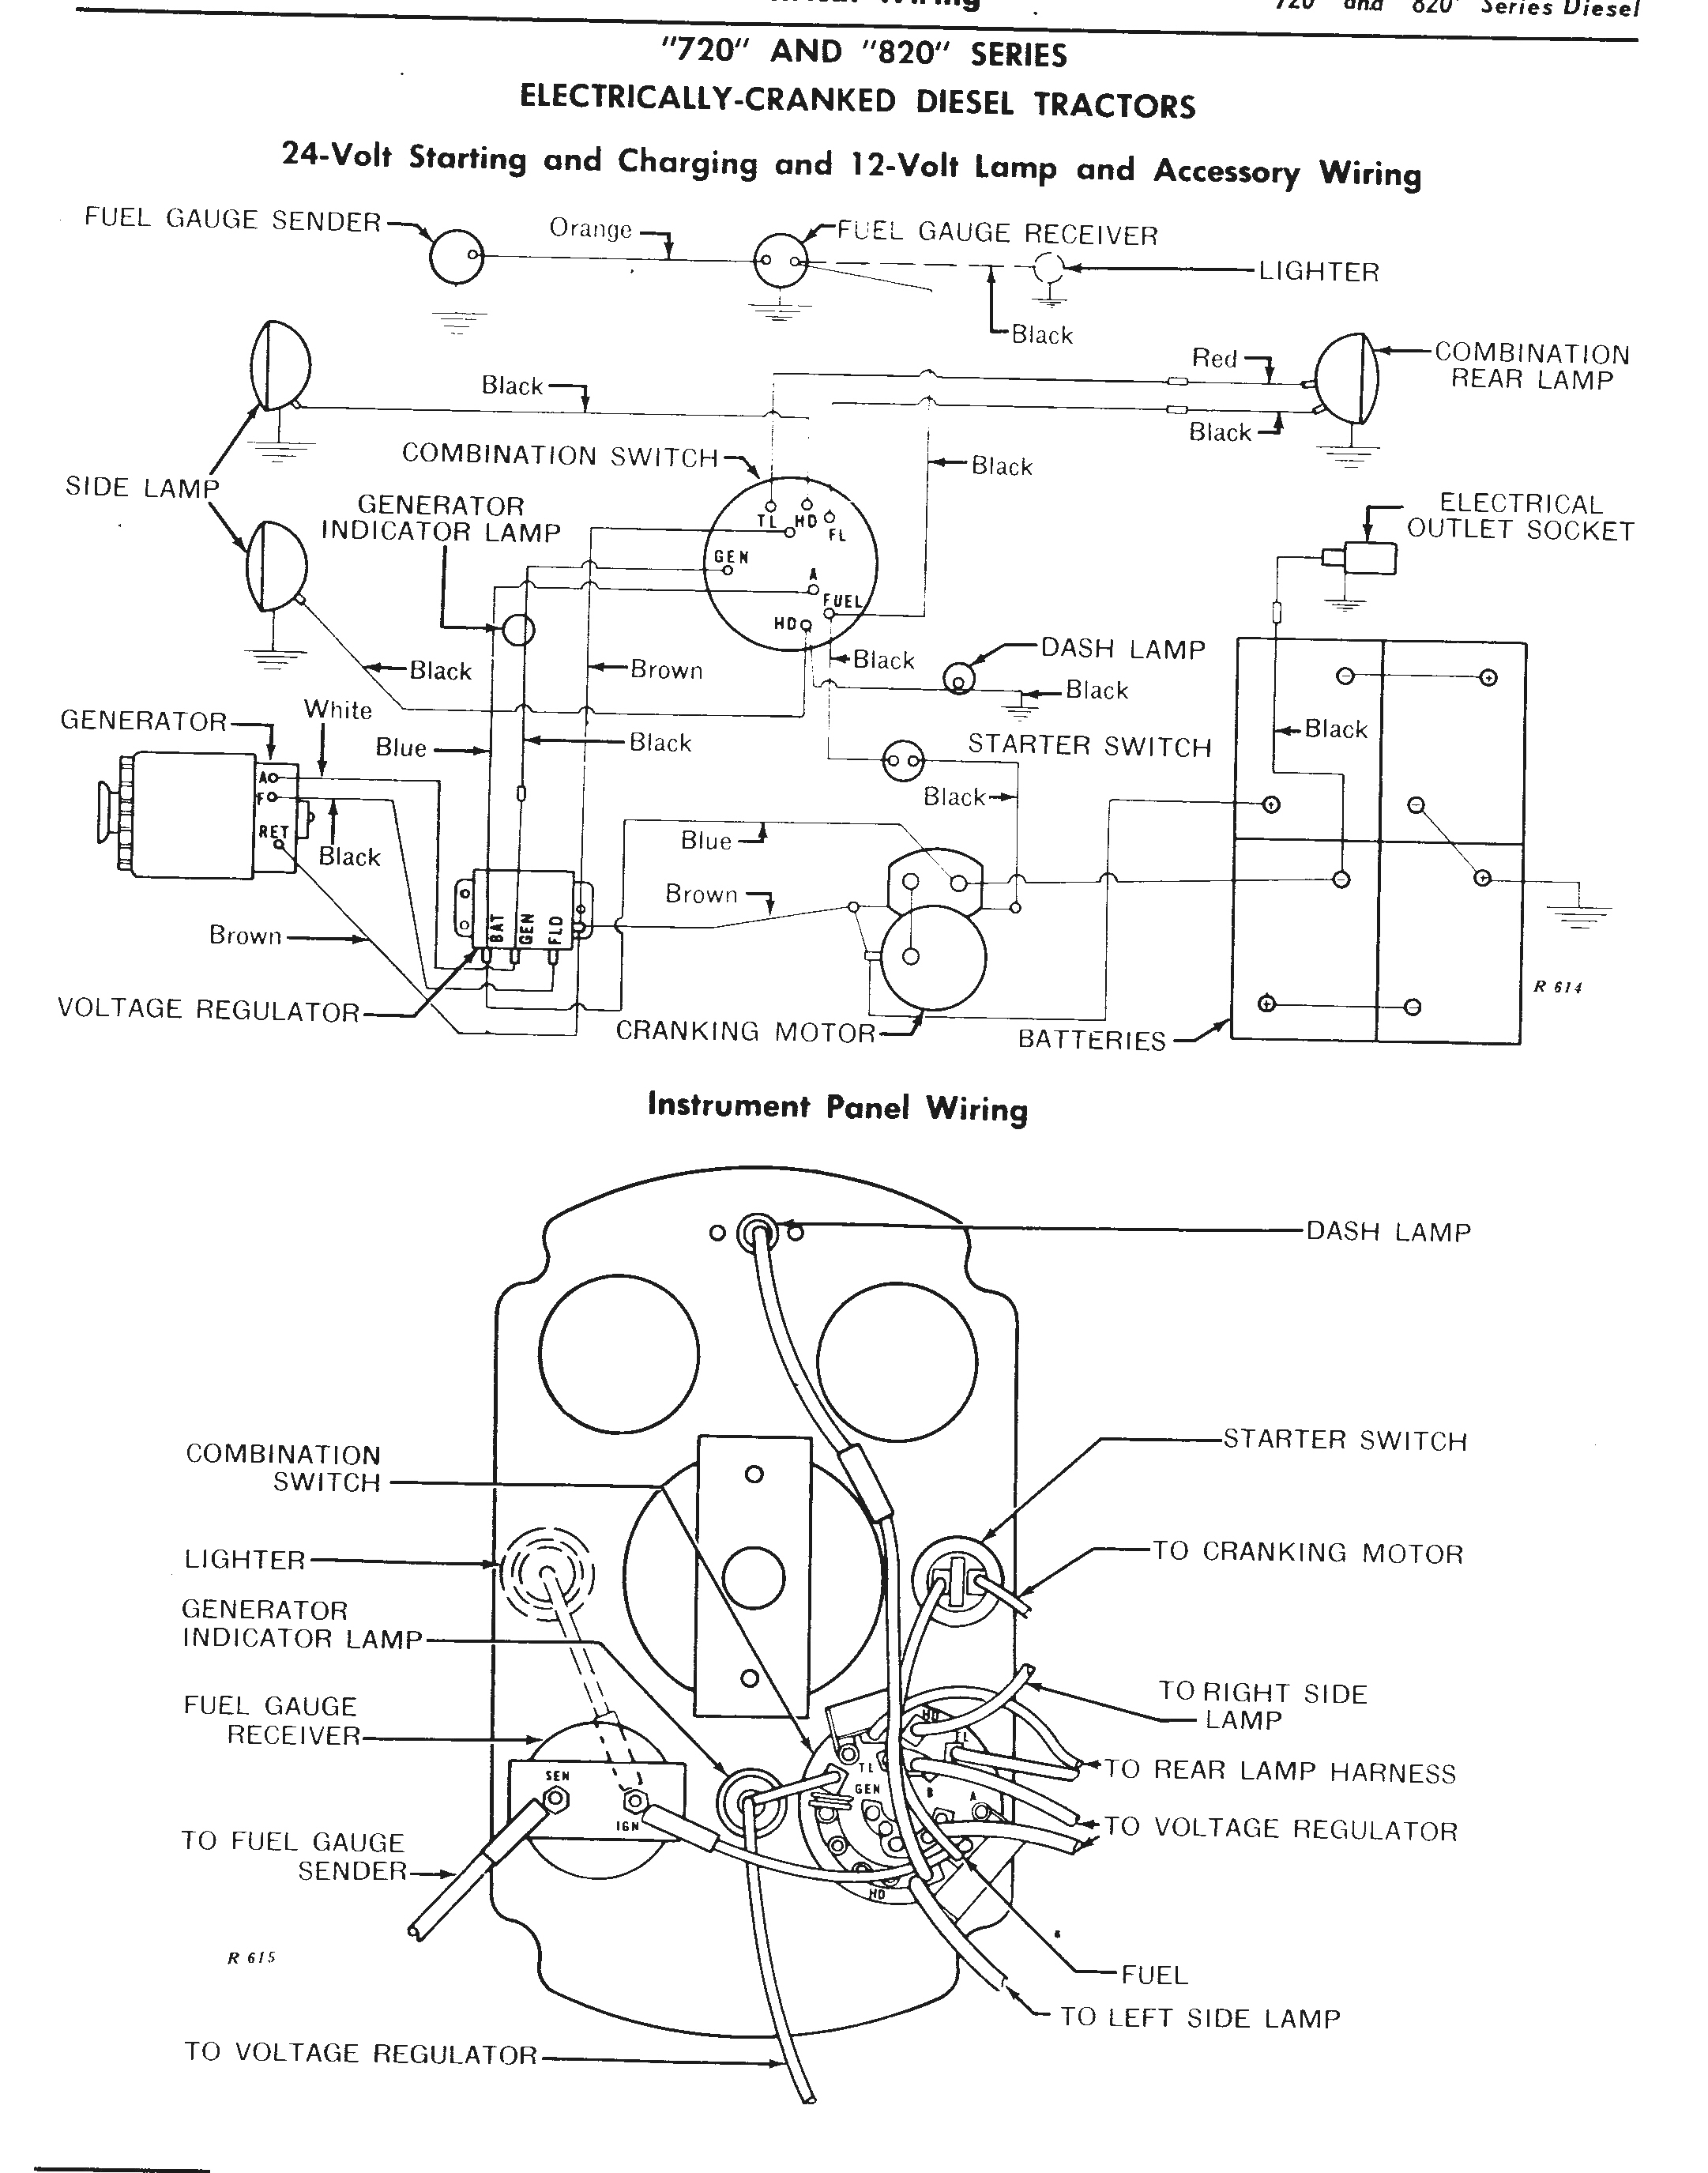 deere_24v_wiring the john deere 24 volt electrical system explained john deere 4020 12 volt wiring diagram at bayanpartner.co